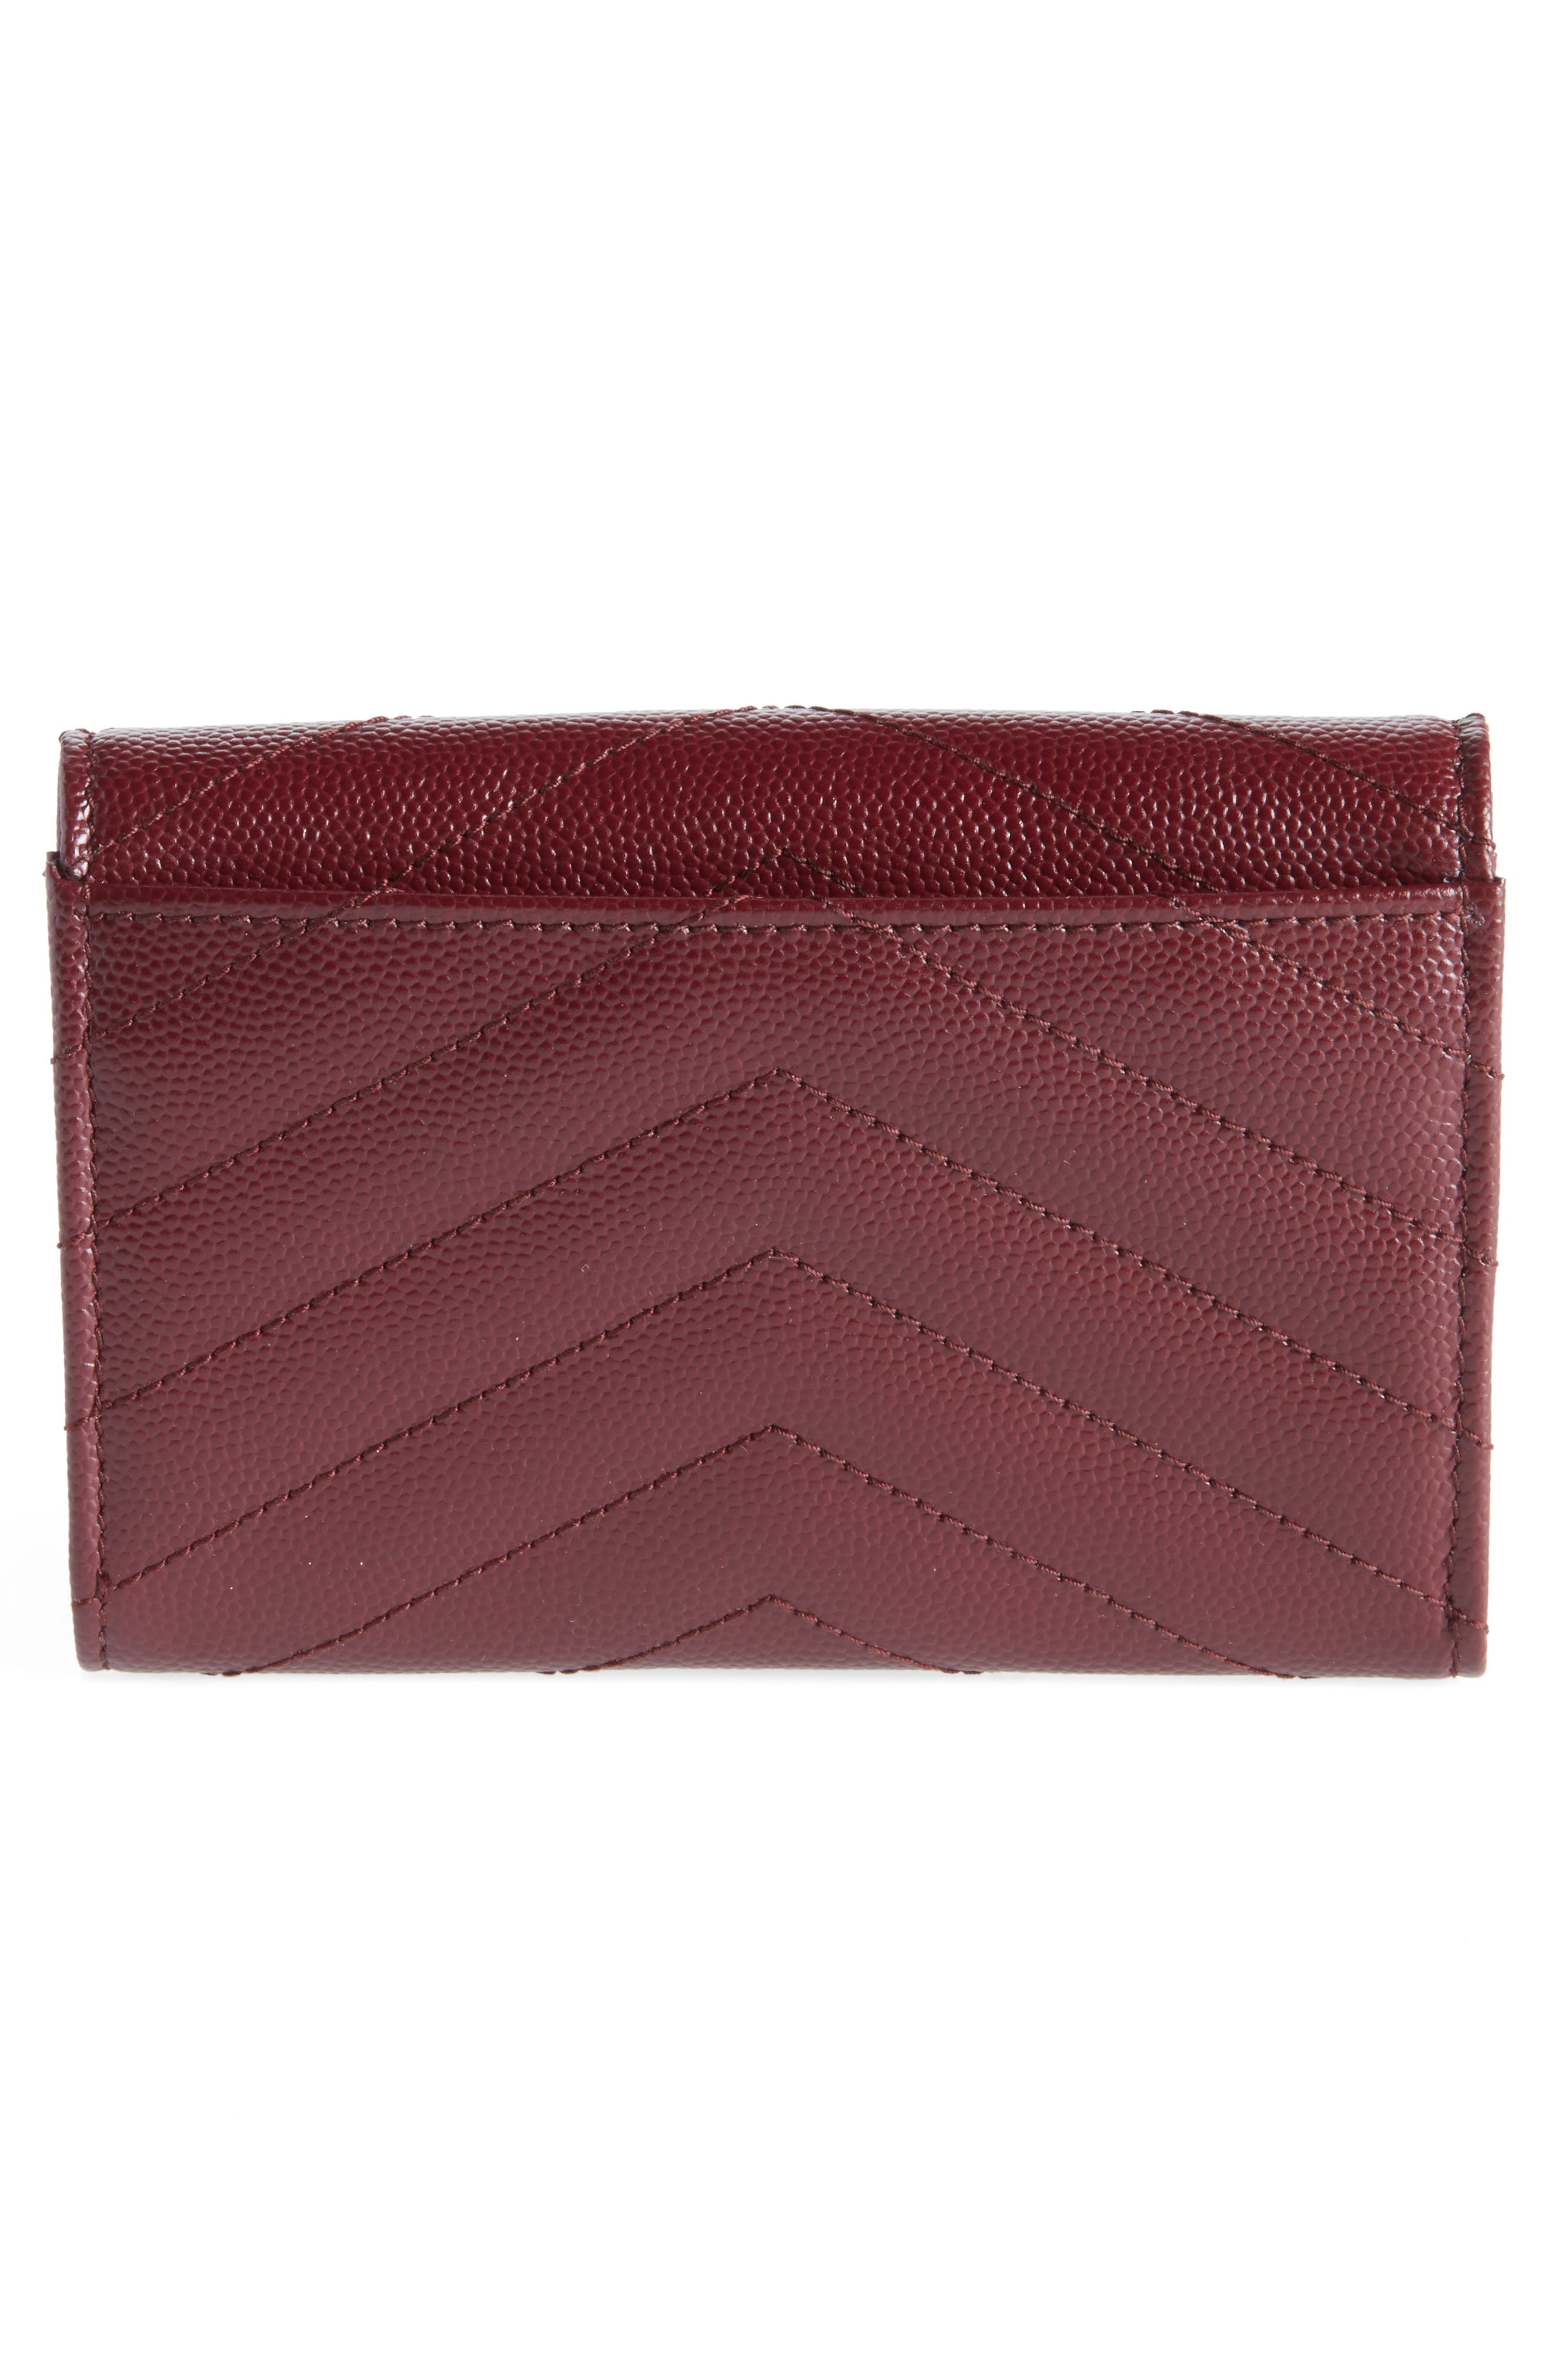 'Monogram' Quilted Leather French Wallet,                             Alternate thumbnail 4, color,                             ROUGE LEGION